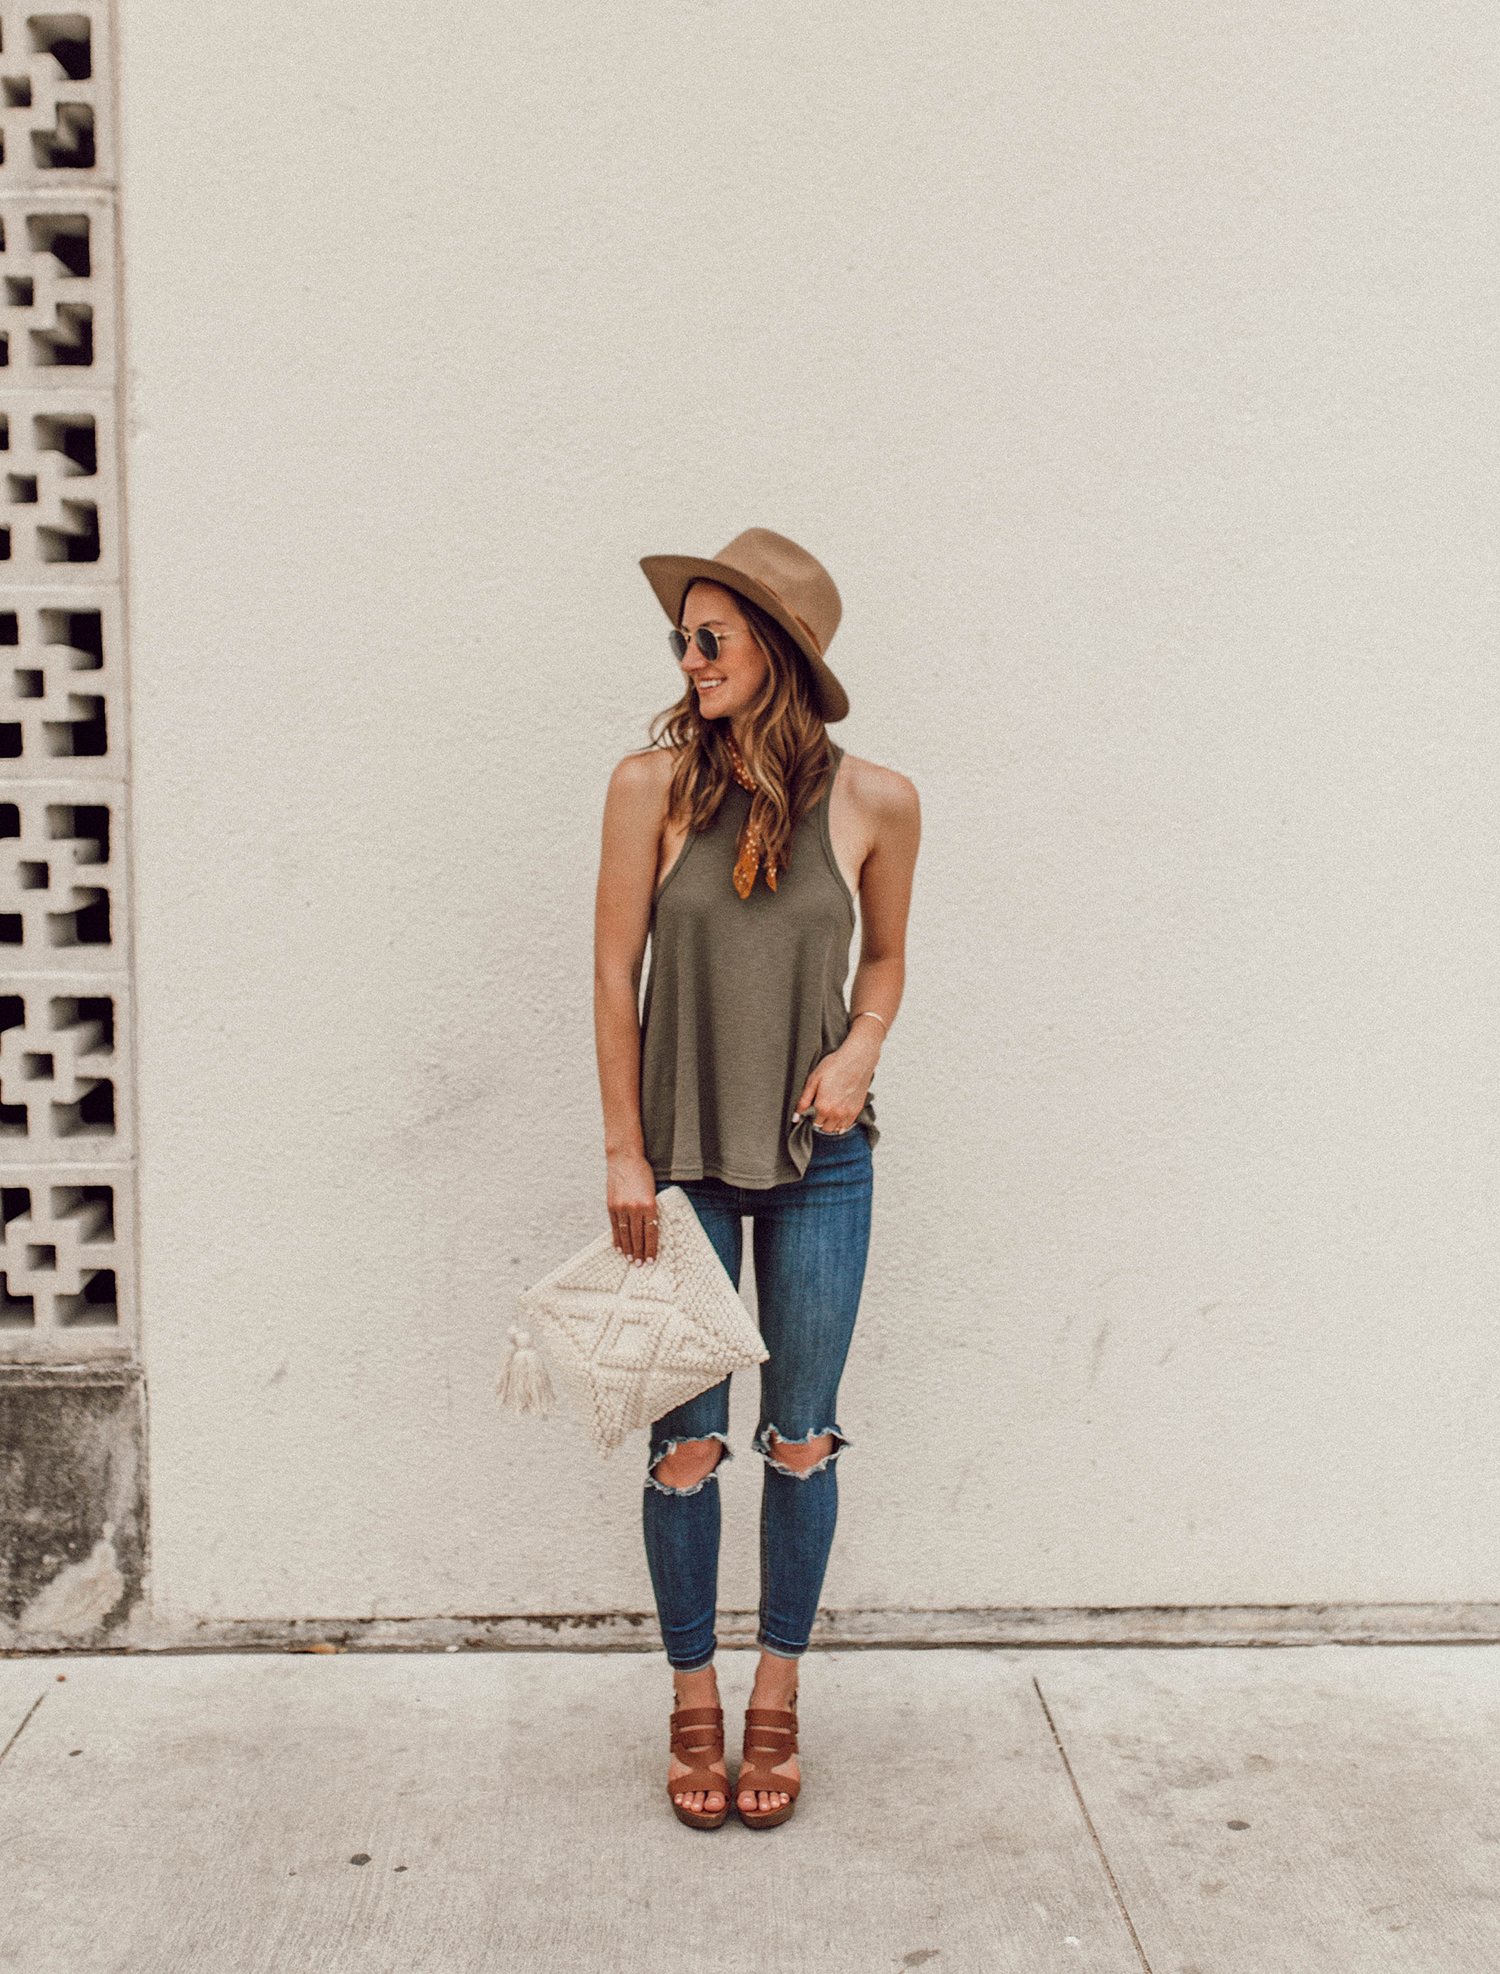 livvyland-blog-olivia-watson-austin-texas-fashion-style-blogger-sole-society-tan-sandal-wedges-4